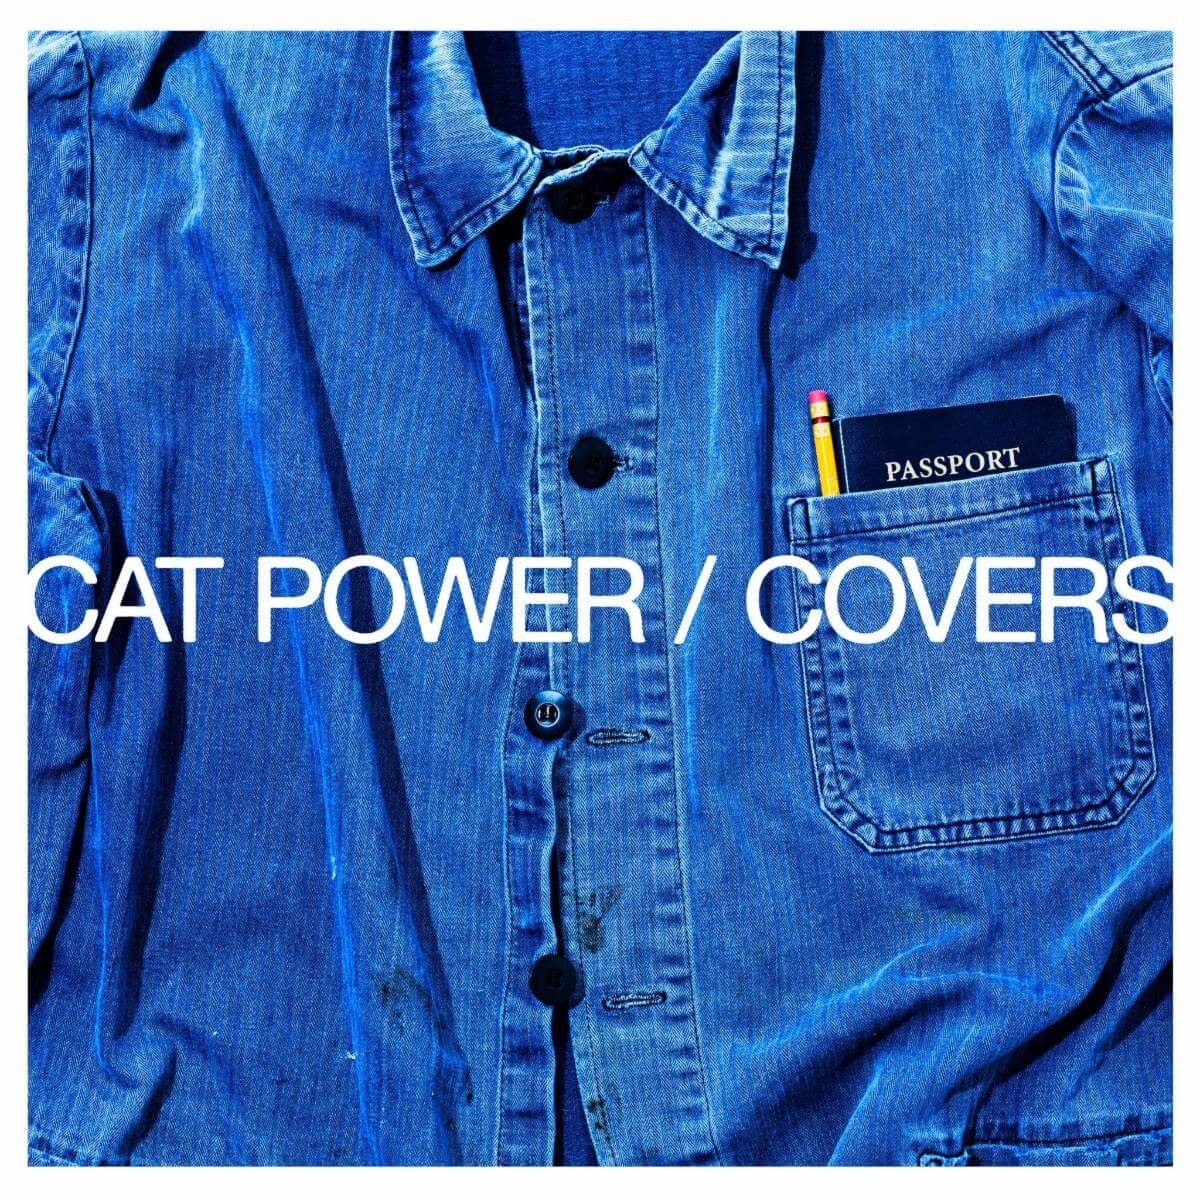 Chan Marshall AKA: Cat Power, has announced her new album Covers, will drop on on January 14th 2022, via Domino